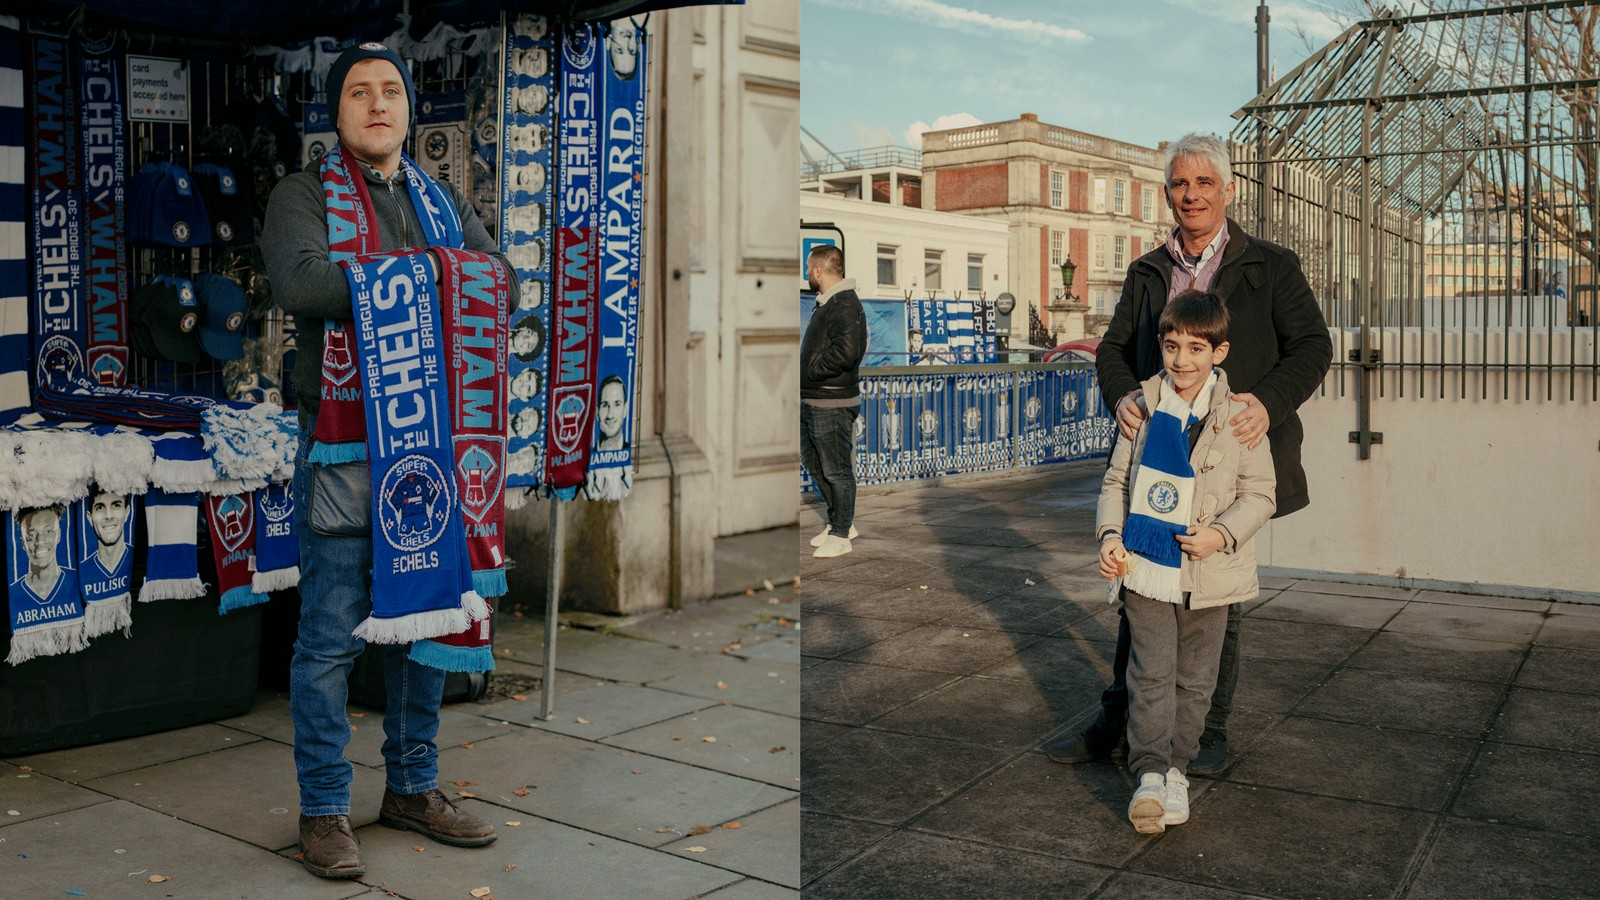 Every Football Club's Fans Have Their Match Day Rituals – These Are Chelsea's